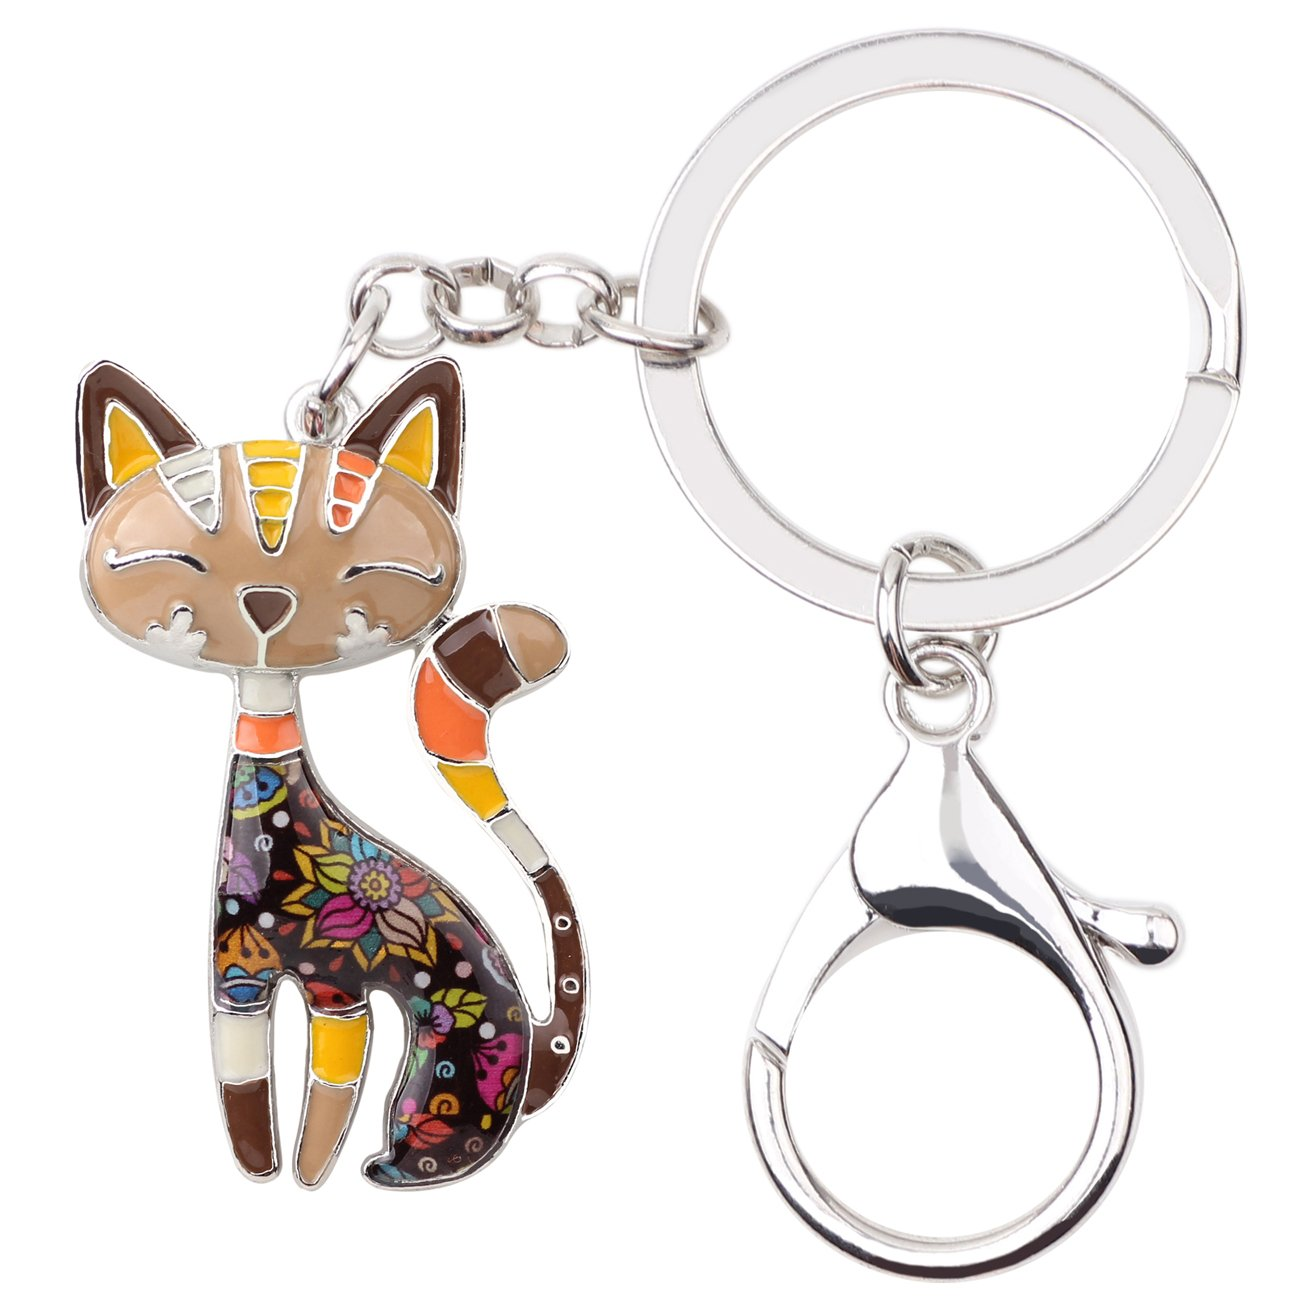 Bonsny Enamel Alloy Chain Cat Key Chains For Women Car Purse Handbag Charms (Brown)